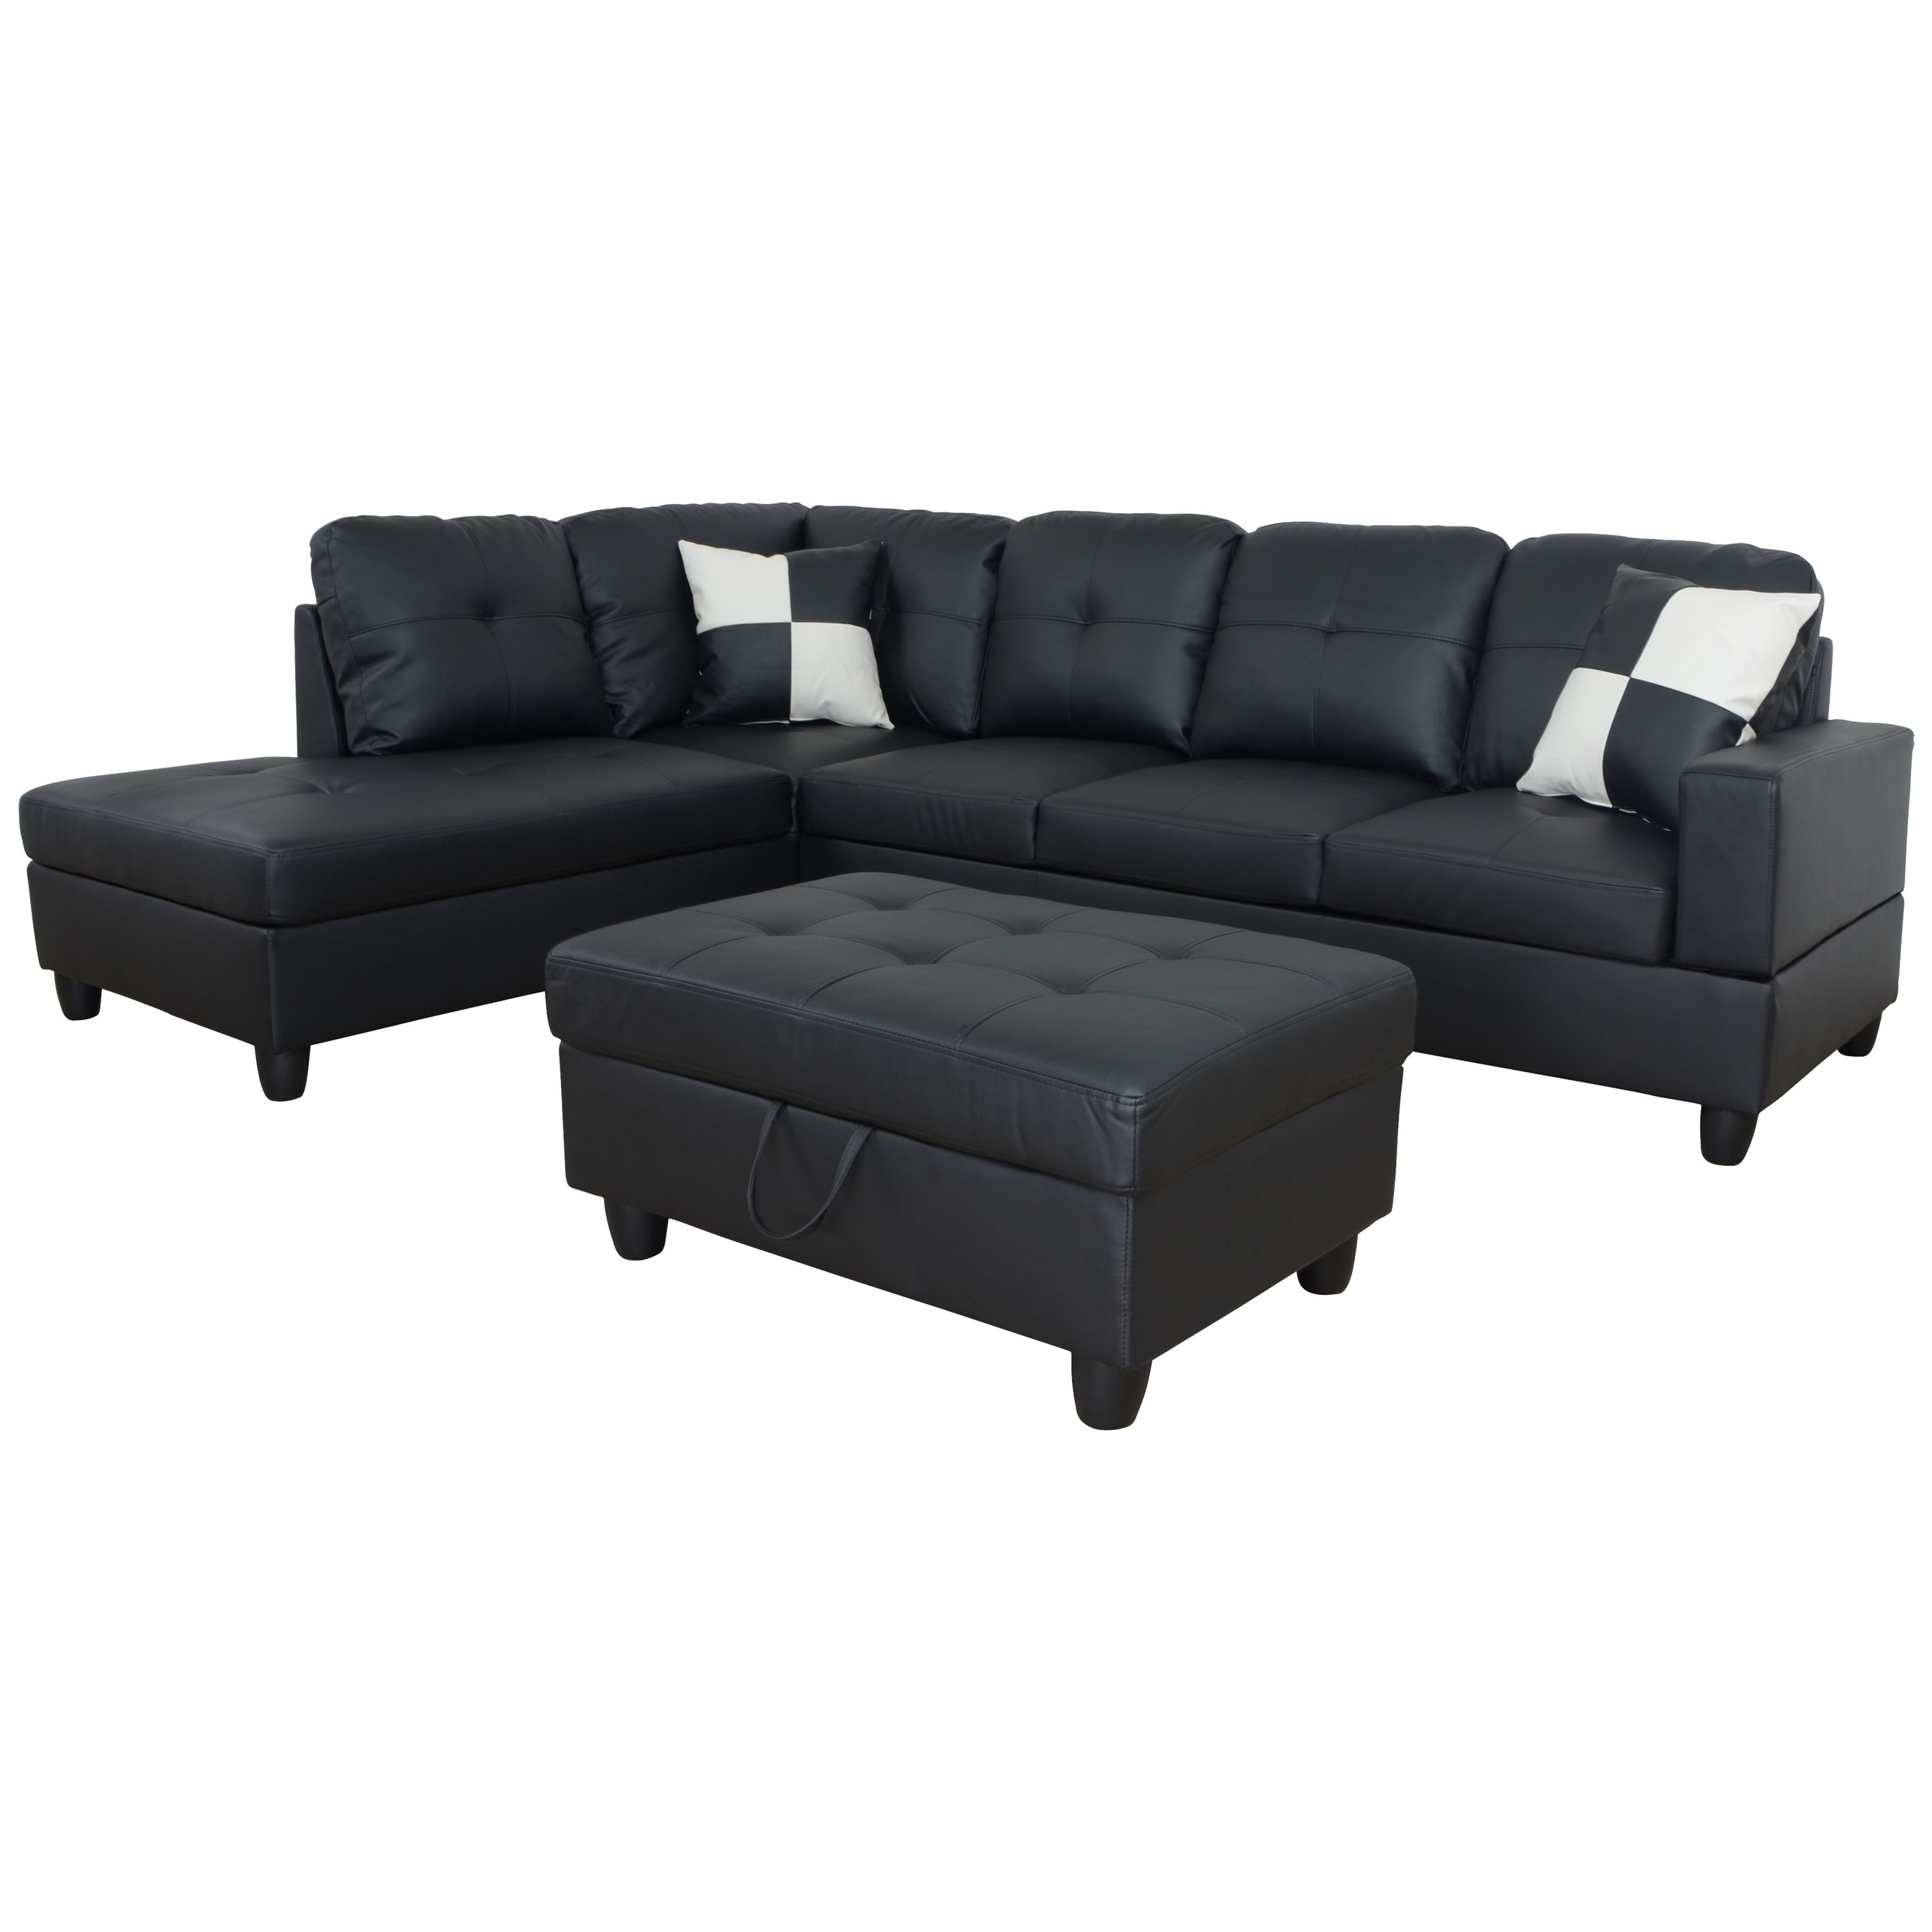 Shop Aycp Furniture L Shape Sectional Sofa With Storage Ottoman Aycp ...